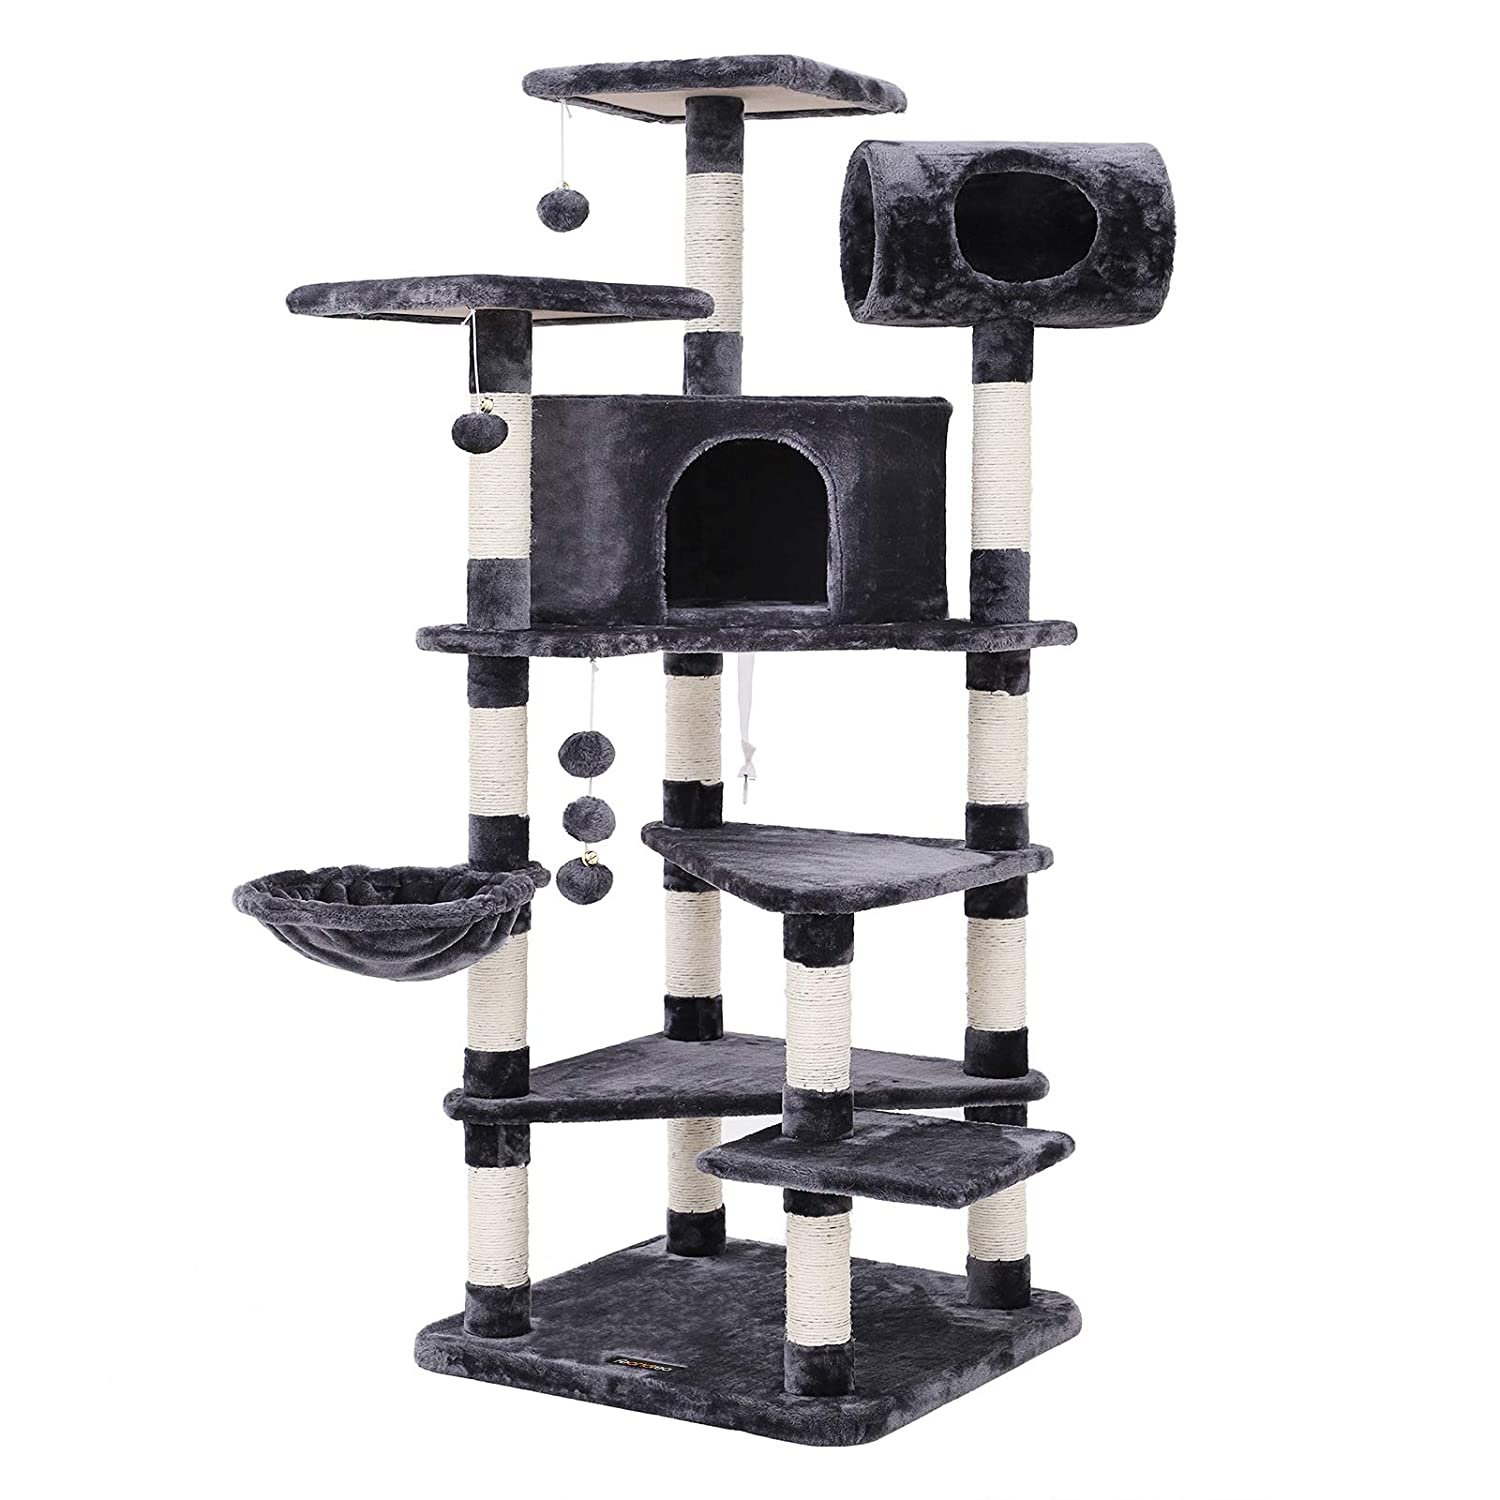 d23040403a06 FEANDREA Multi-level Large Cat Tree Cat Furniture Cat Play House Smoky Grey  PCT17G: Amazon.co.uk: Pet Supplies